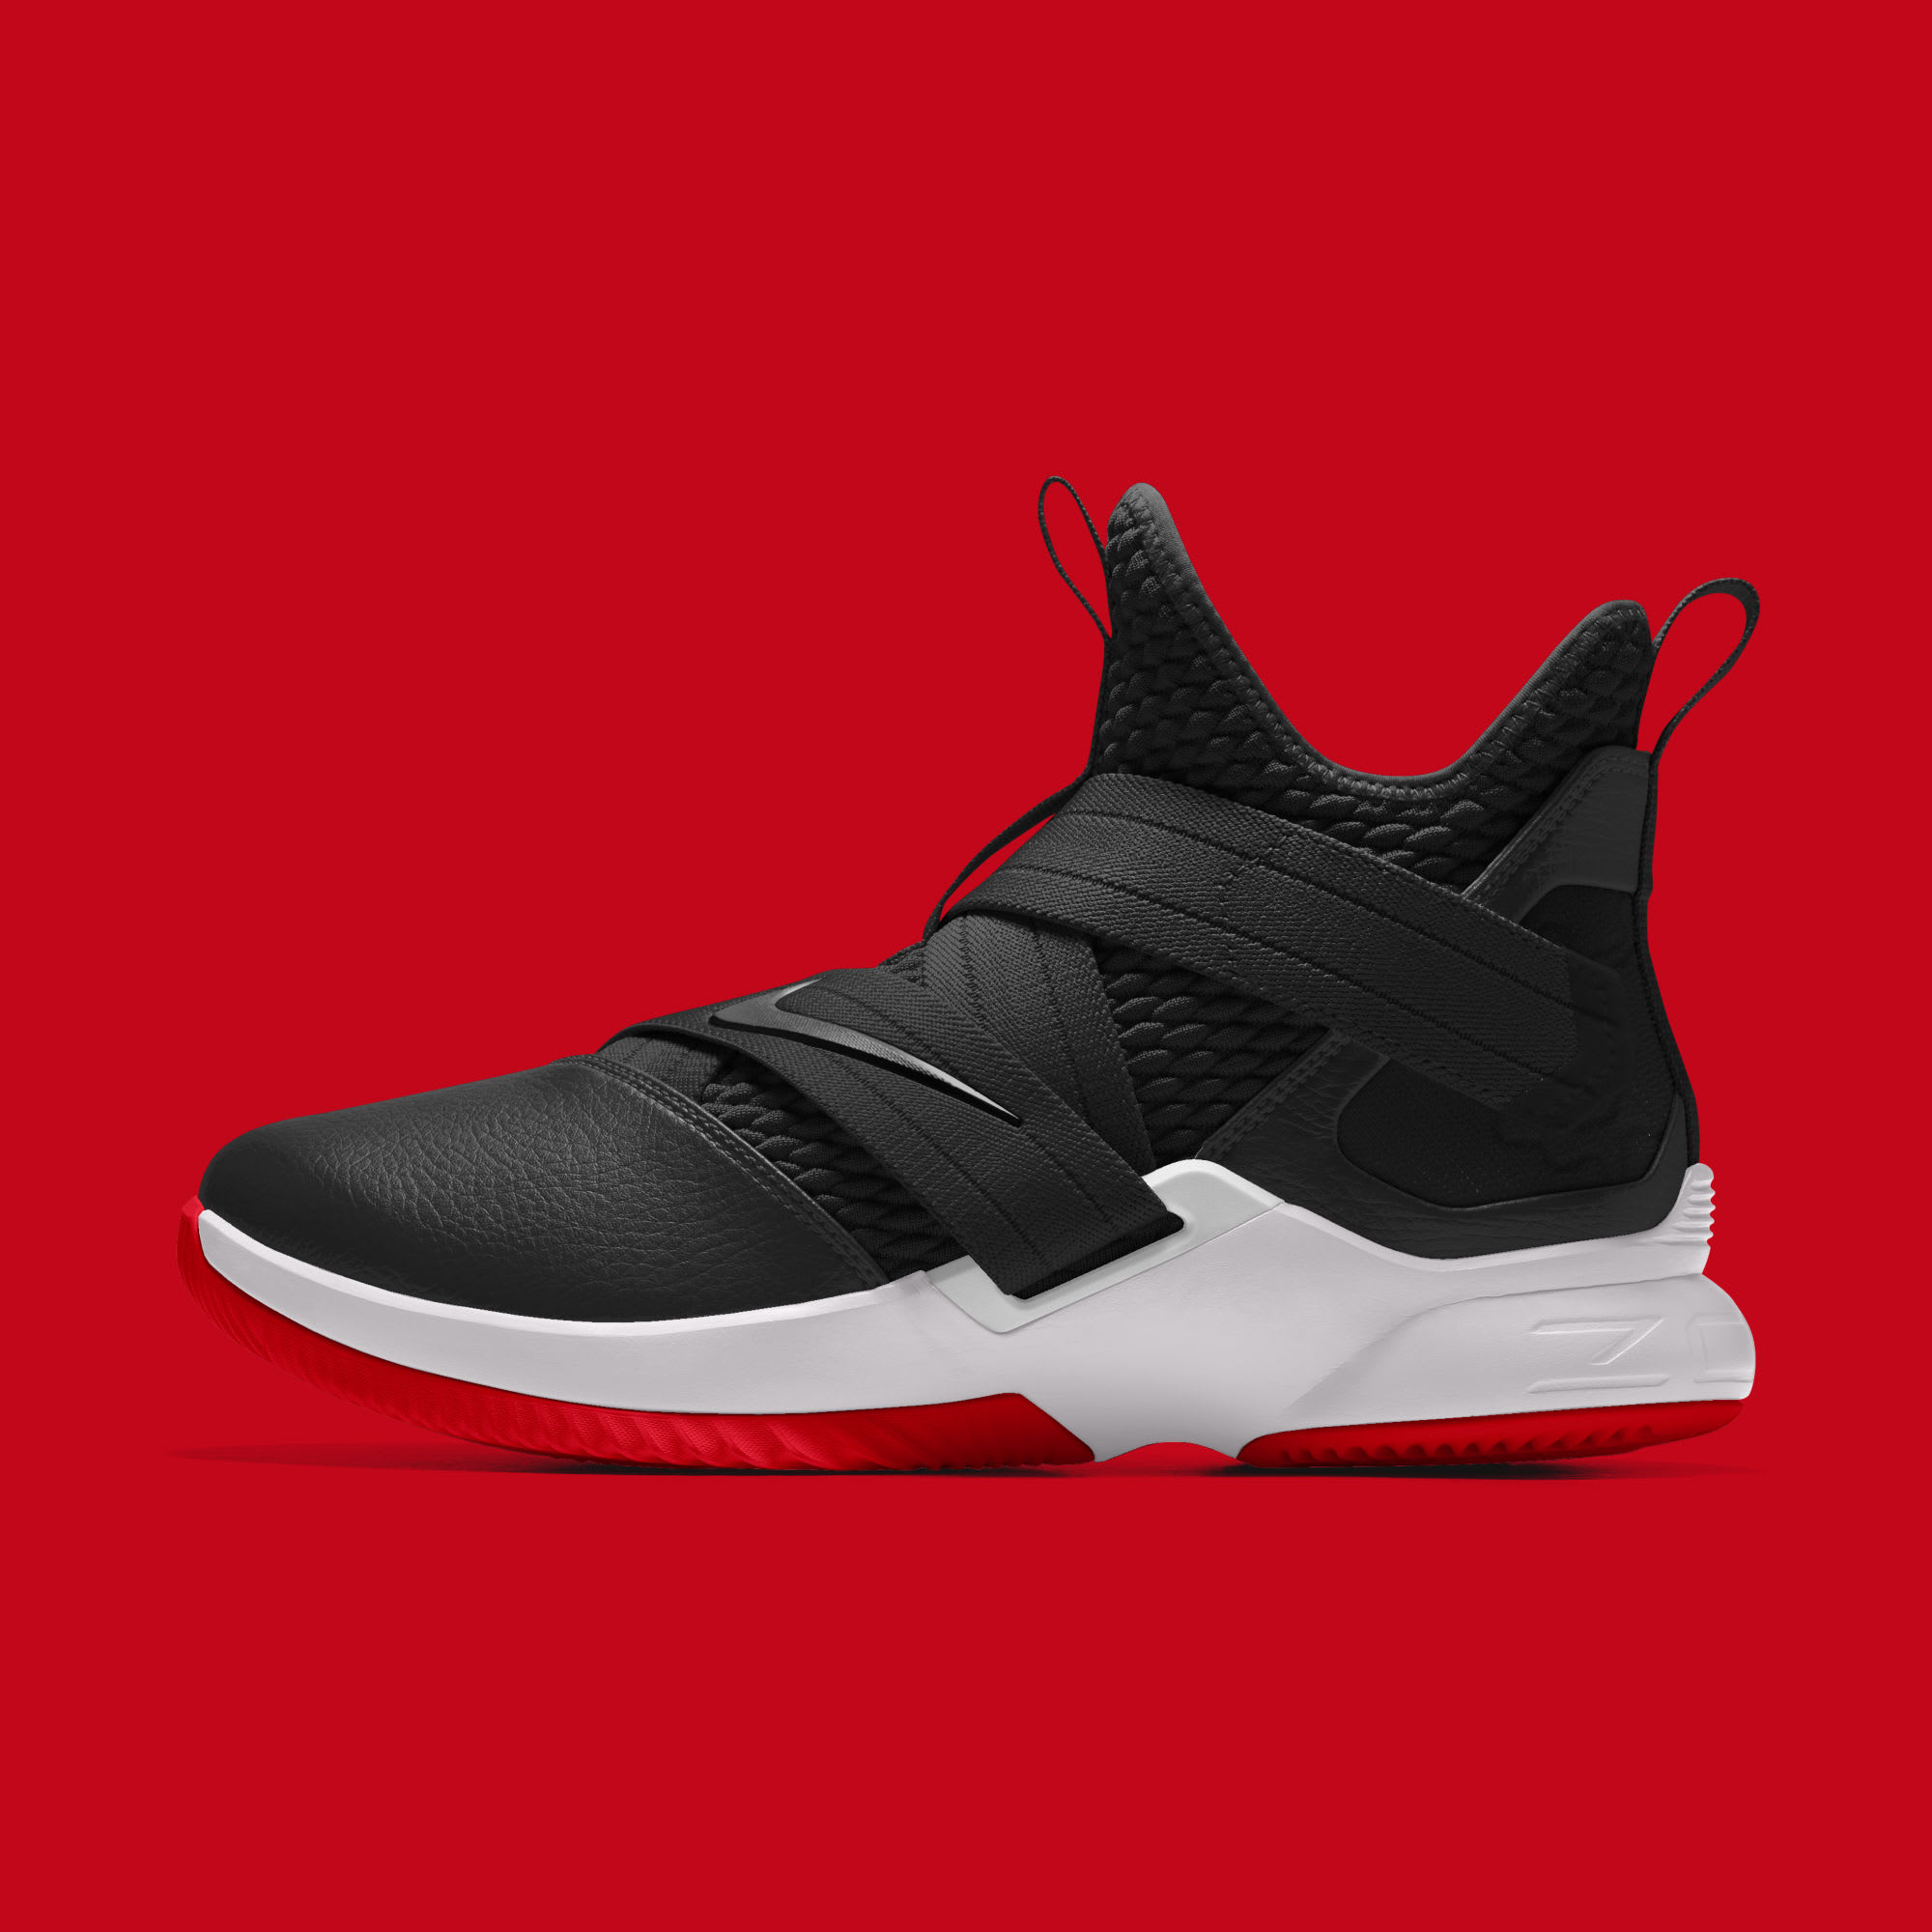 online store 4530d d3585 NIKEiD LeBron Soldier 12 XII Release Date - Hunnid Grind